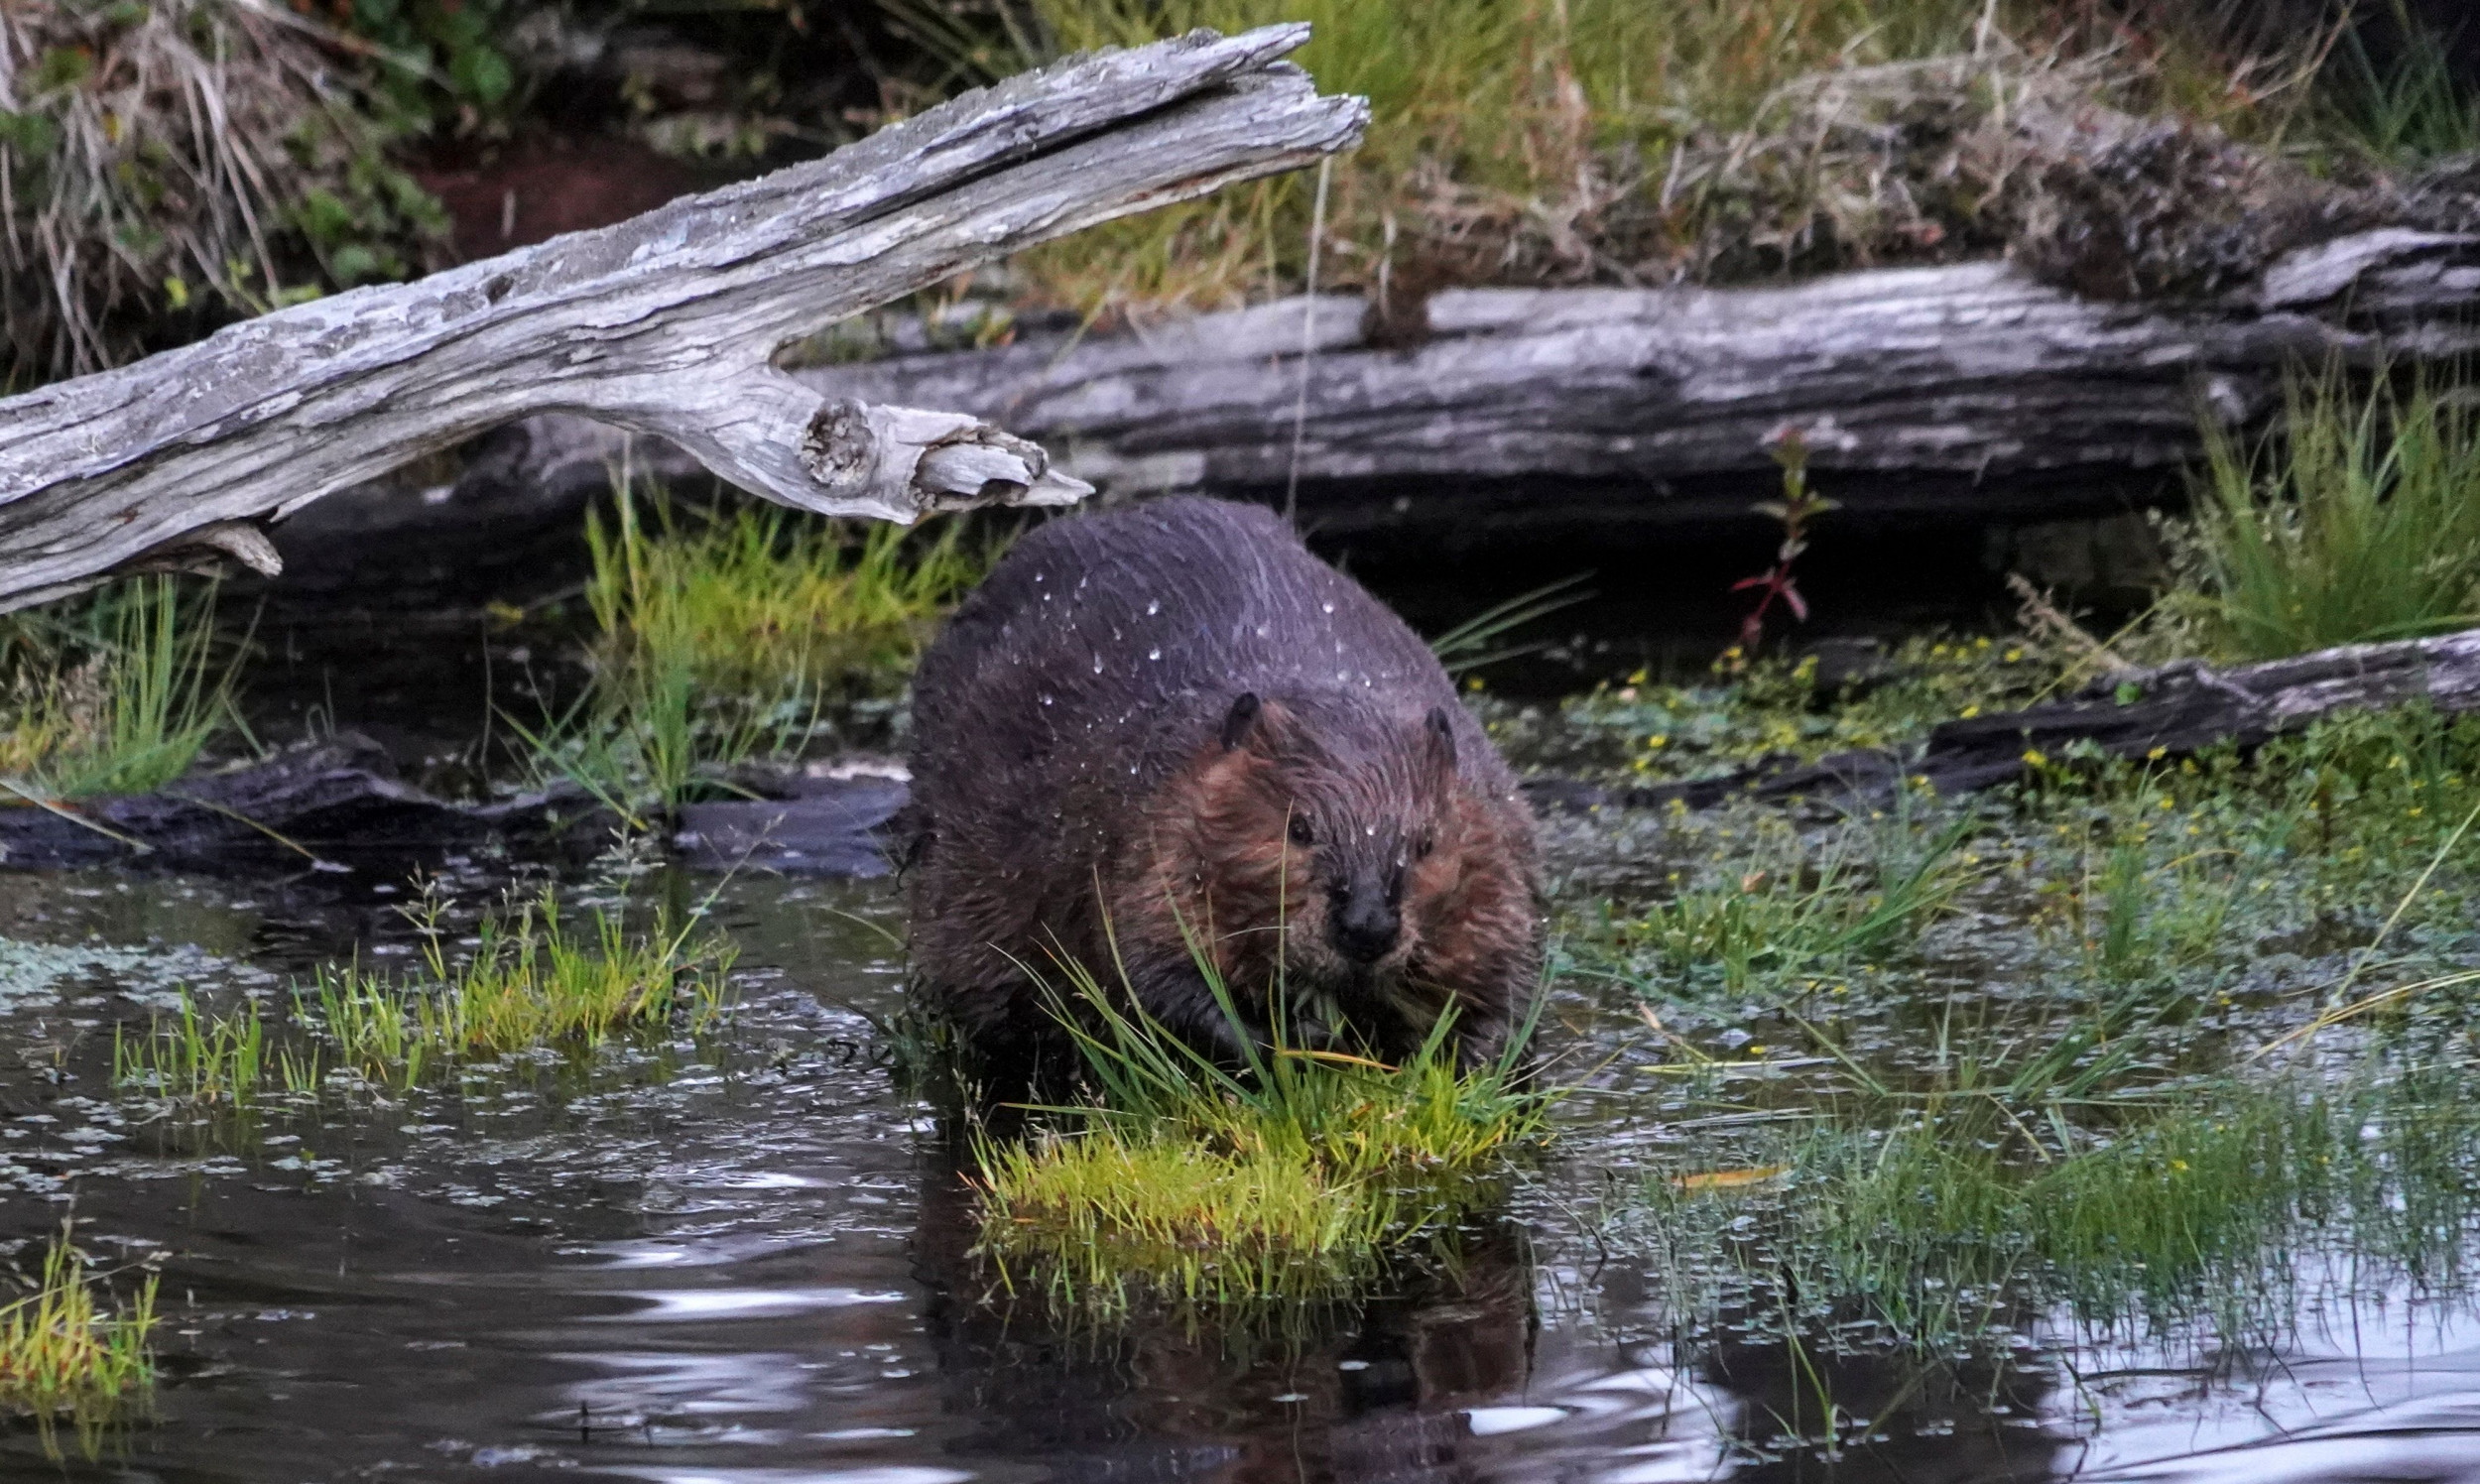 Beavers born in English county 'for first time in 400 years' say conservationists